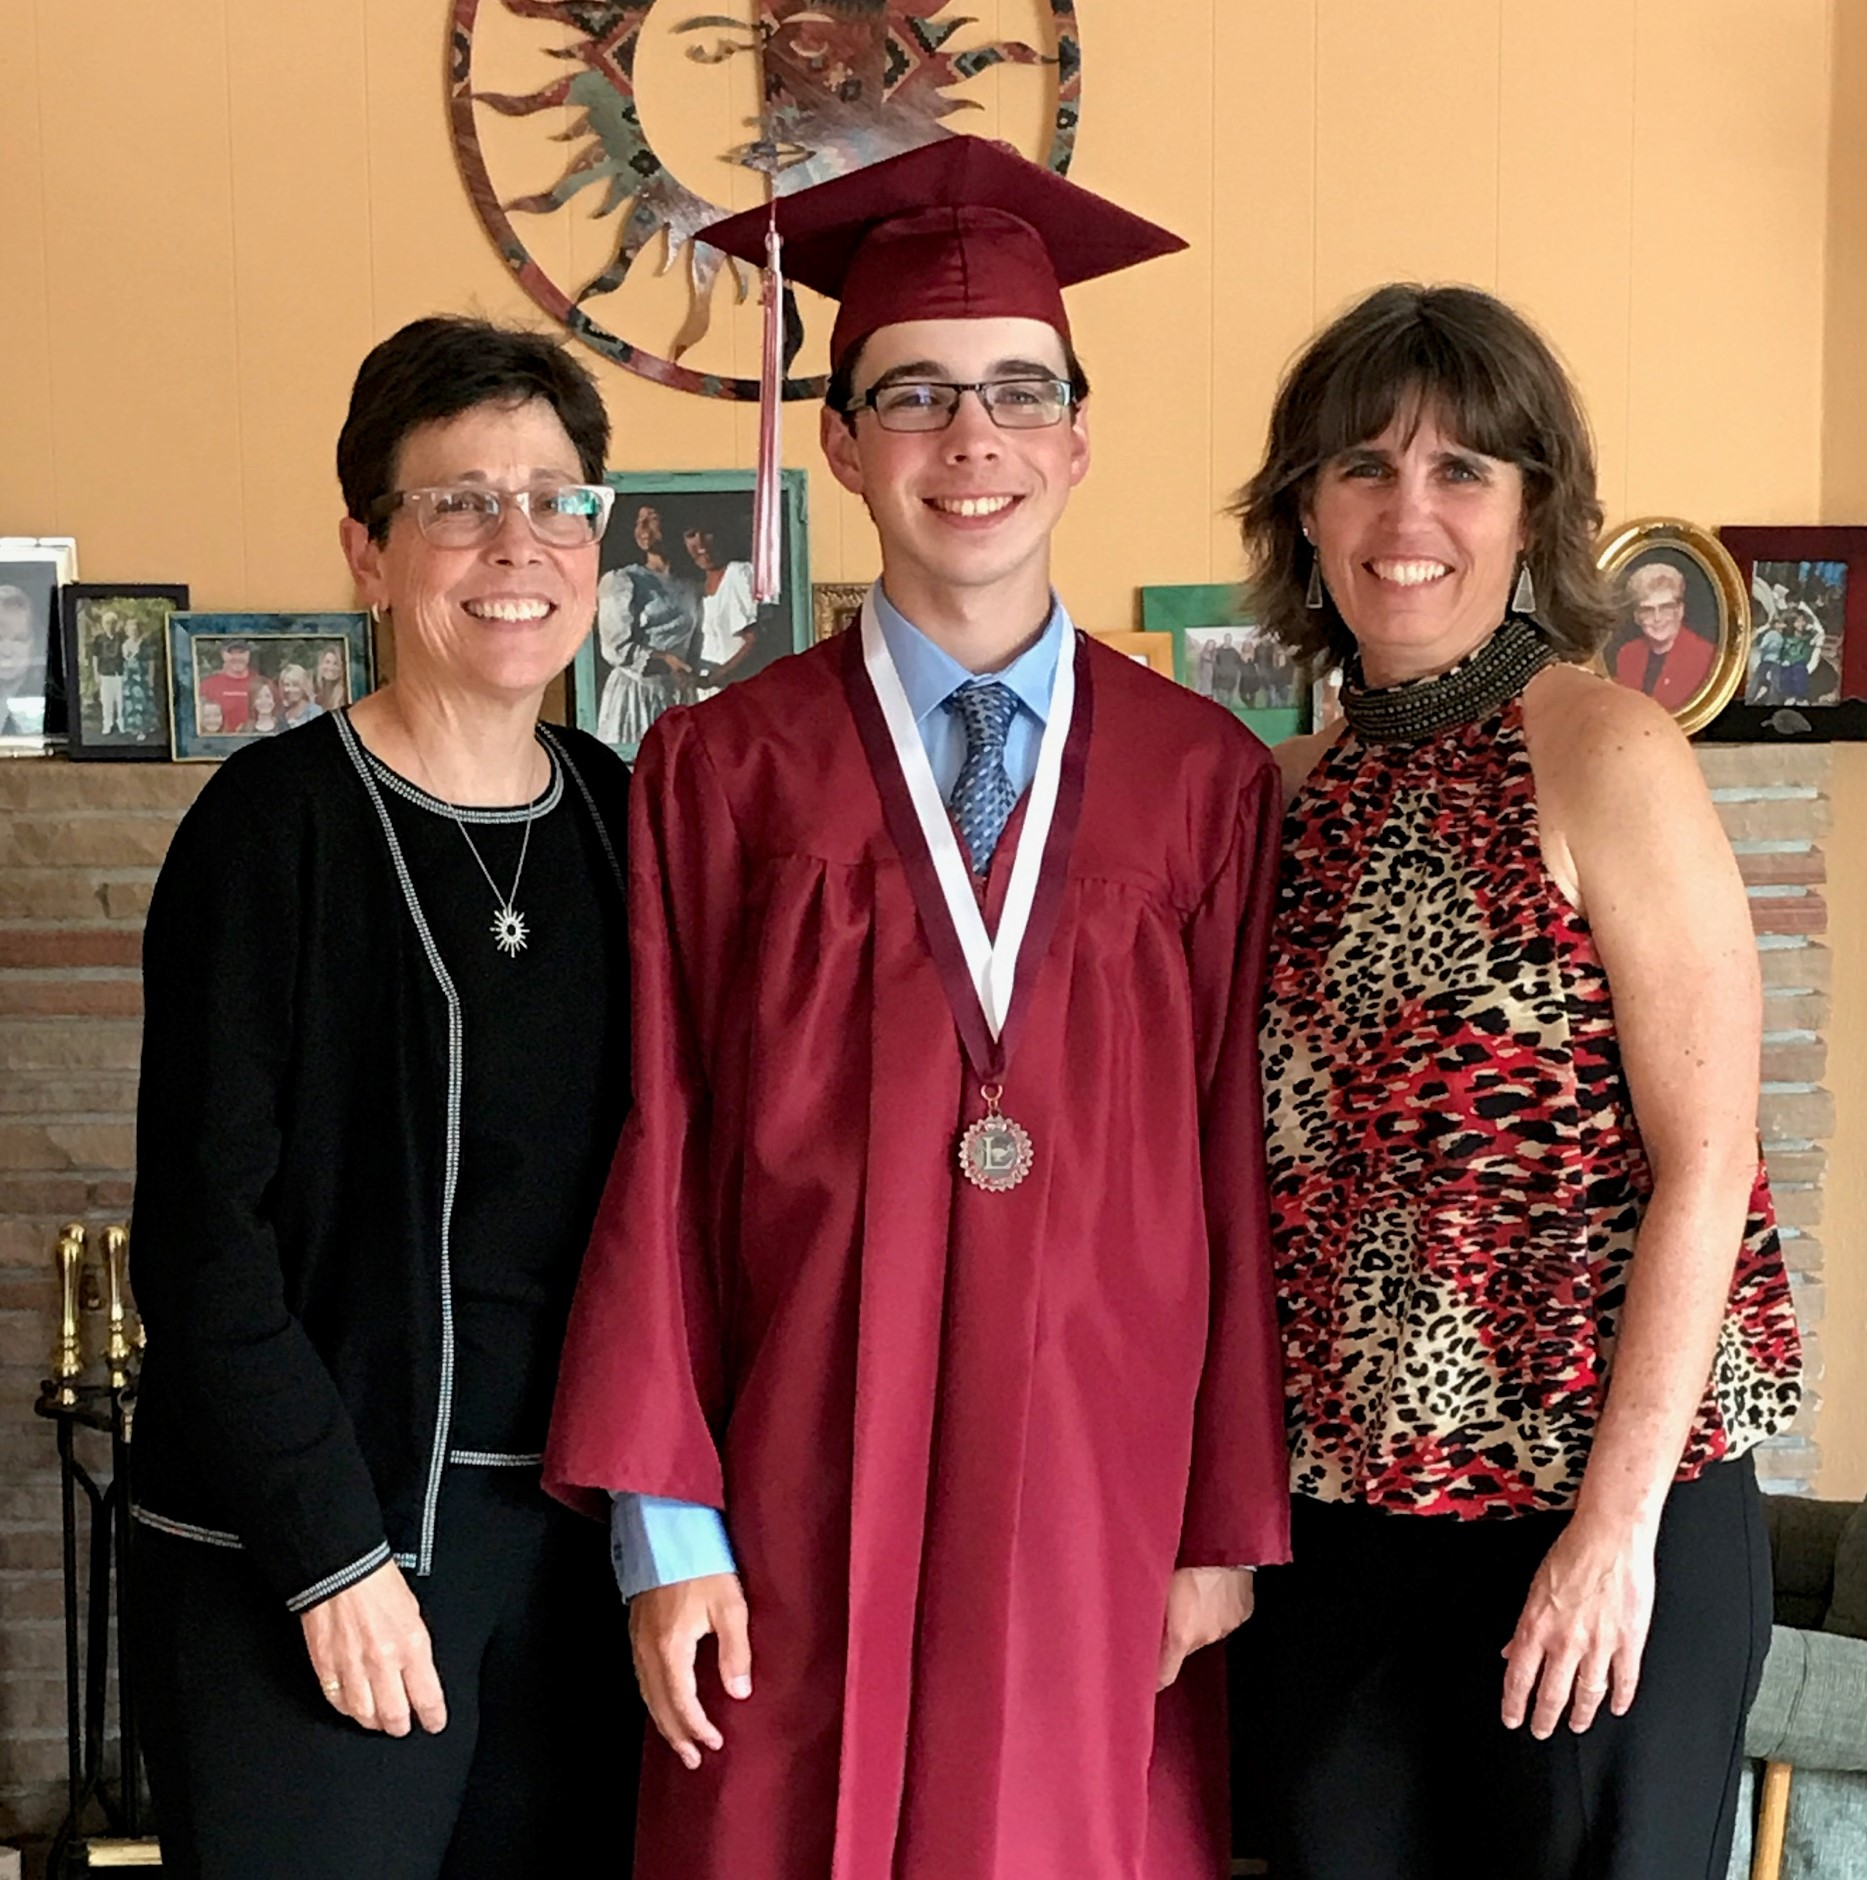 Caption: Reporter Wyatt Barmore-Pooley and his moms Becky and Lisa after his high school graduation